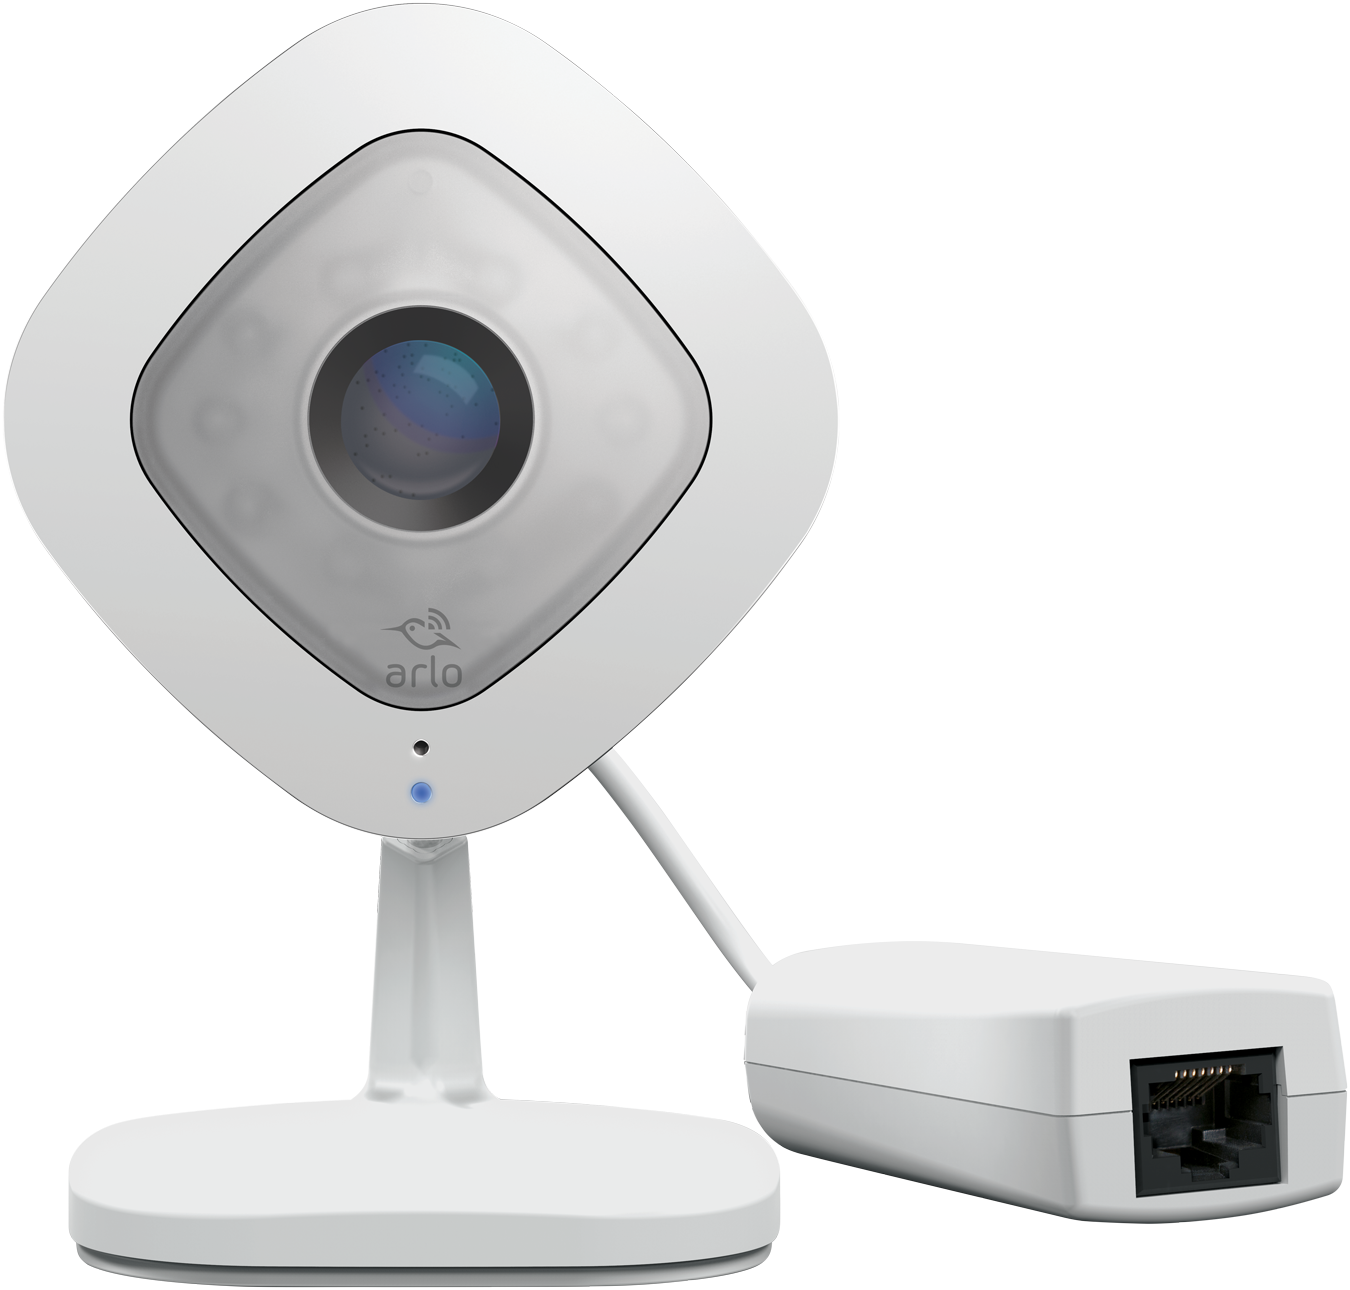 Netgear Arlo Q Plus Smart Security Camera VMC3040S-100EUS